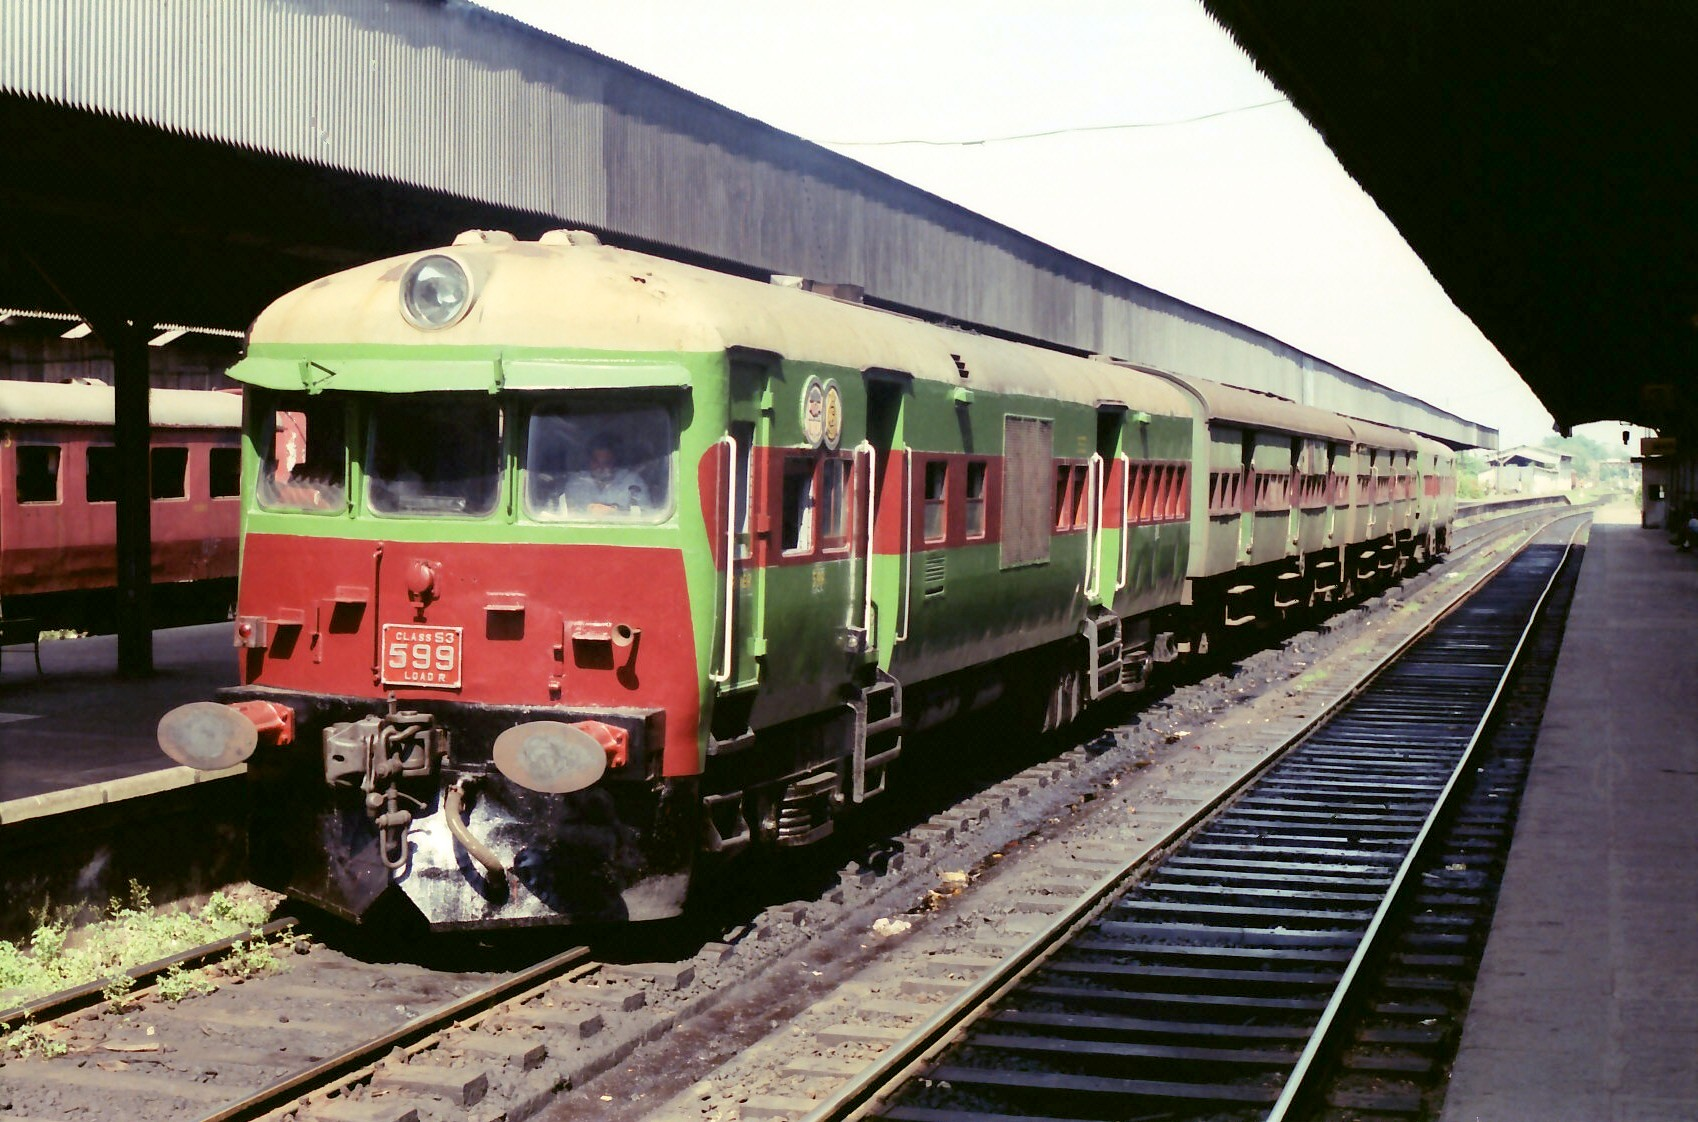 http://upload.wikimedia.org/wikipedia/commons/0/04/Colombo_Sri_Lanka_Railway_-_Train_SLR_Class_S3.jpg